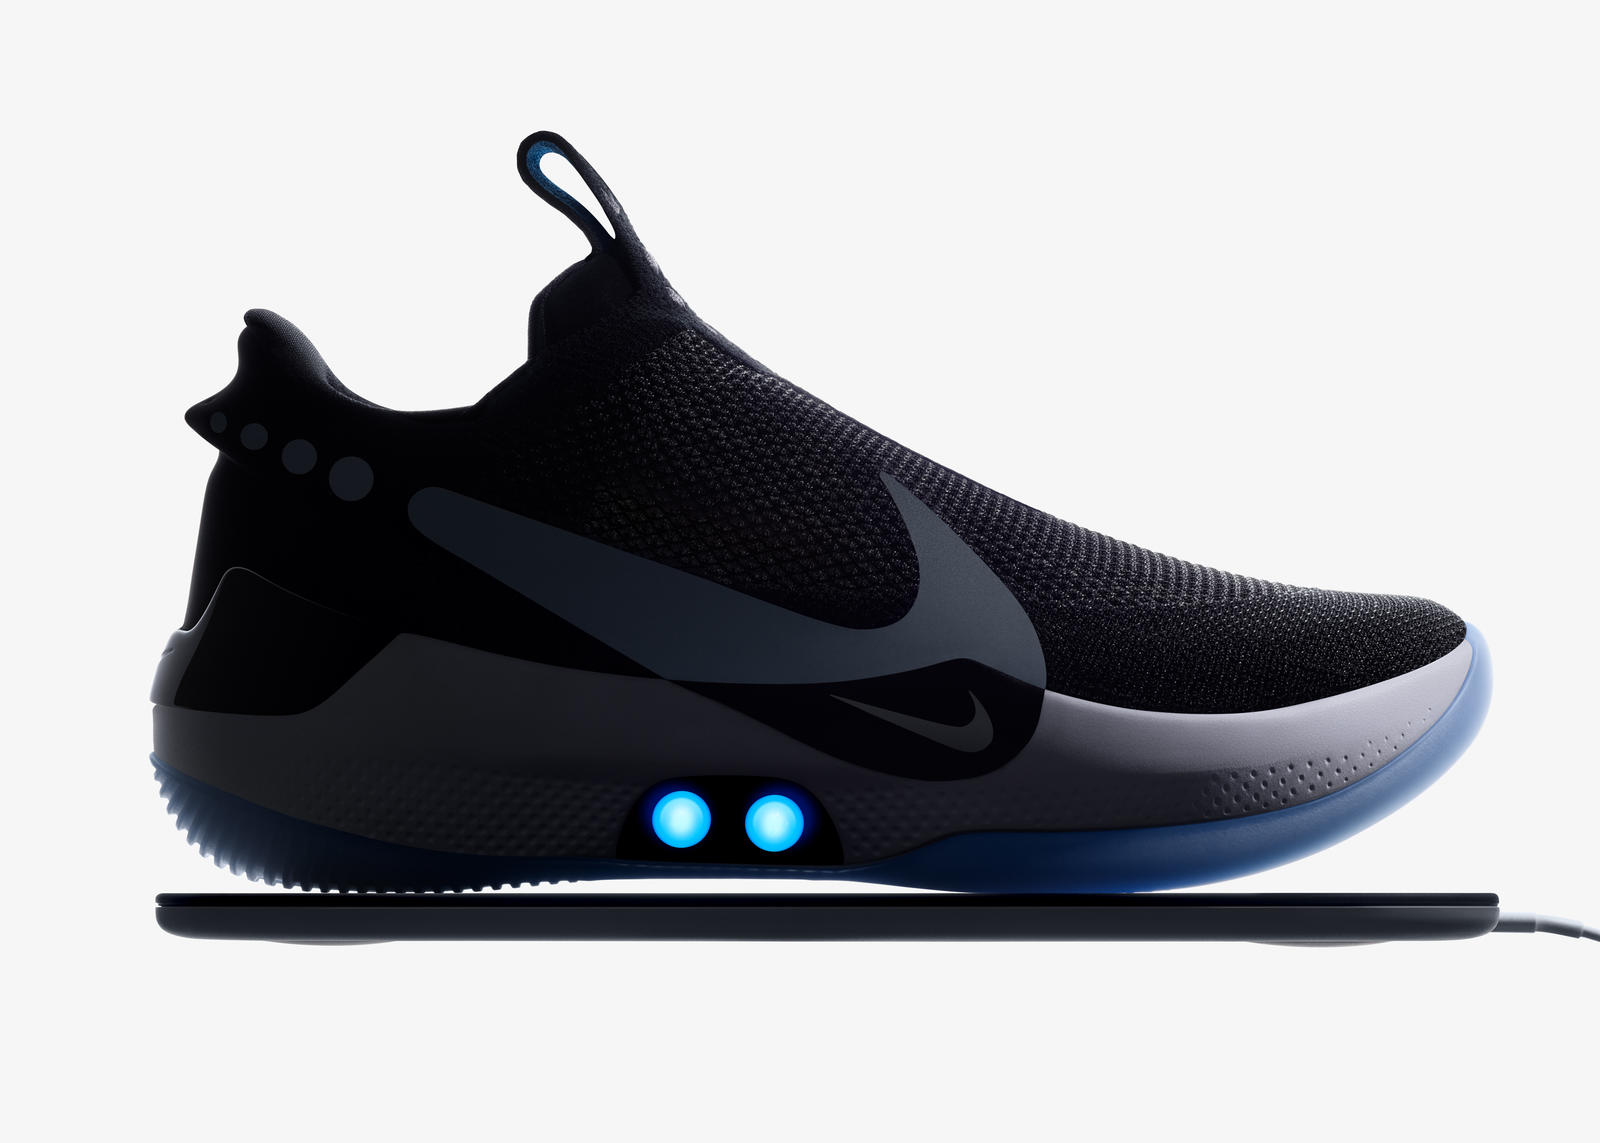 e9f38329f122 What is Nike Adapt  4. The new Nike Adapt BB basketball shoe